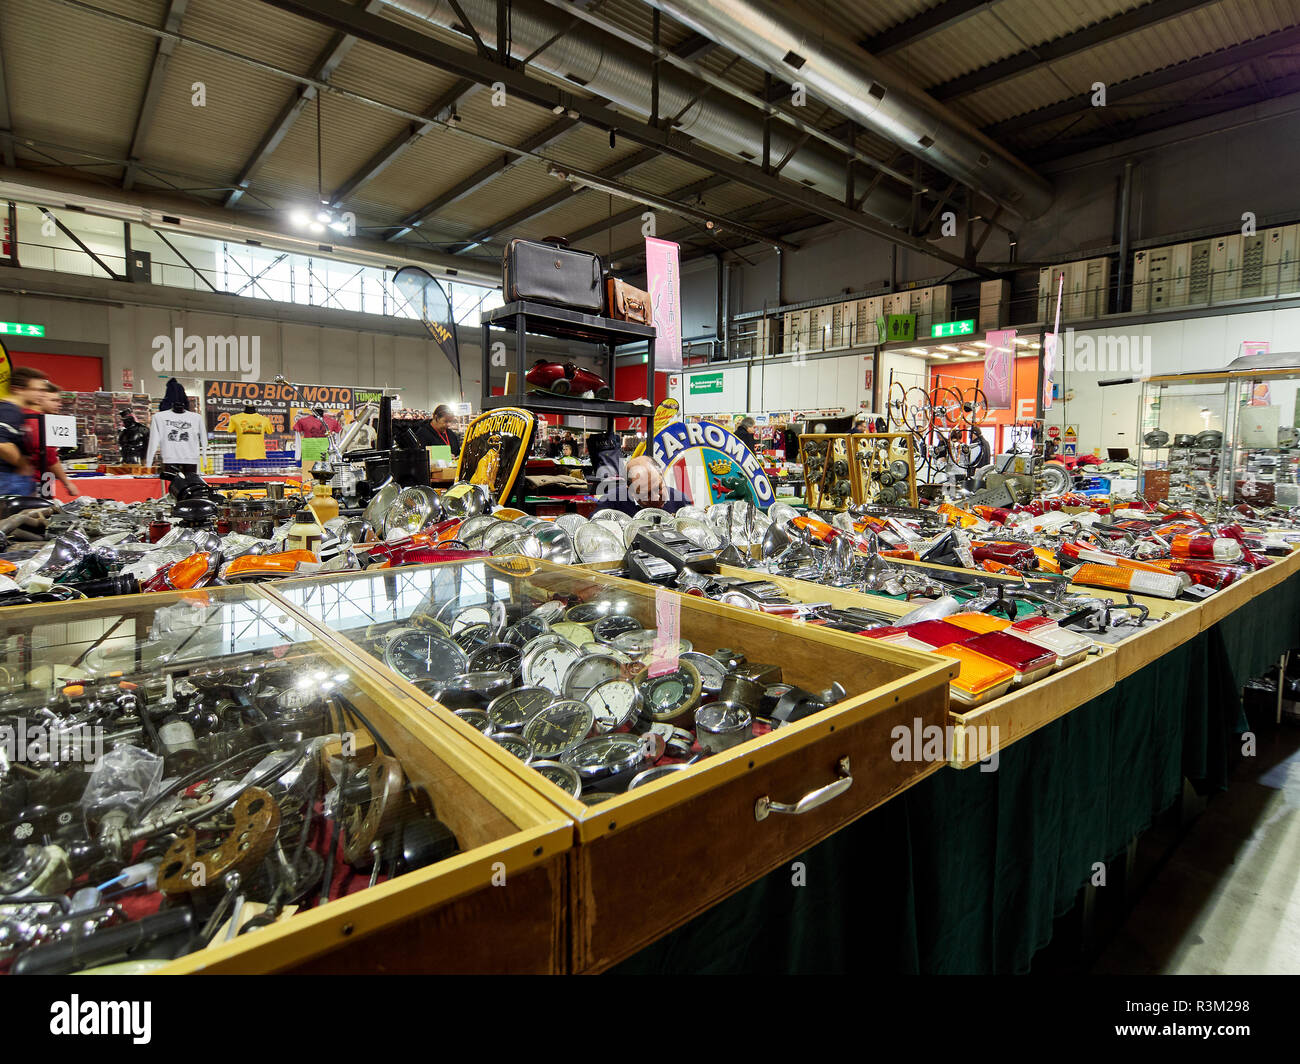 Milan, Lombardy Italy - November 23 , 2018 - Stand selling classic cars spare parts at Autoclassica Milano 2018 edition at Fiera Milano Rho Credit: Armando Borges/Alamy Live News - Stock Image